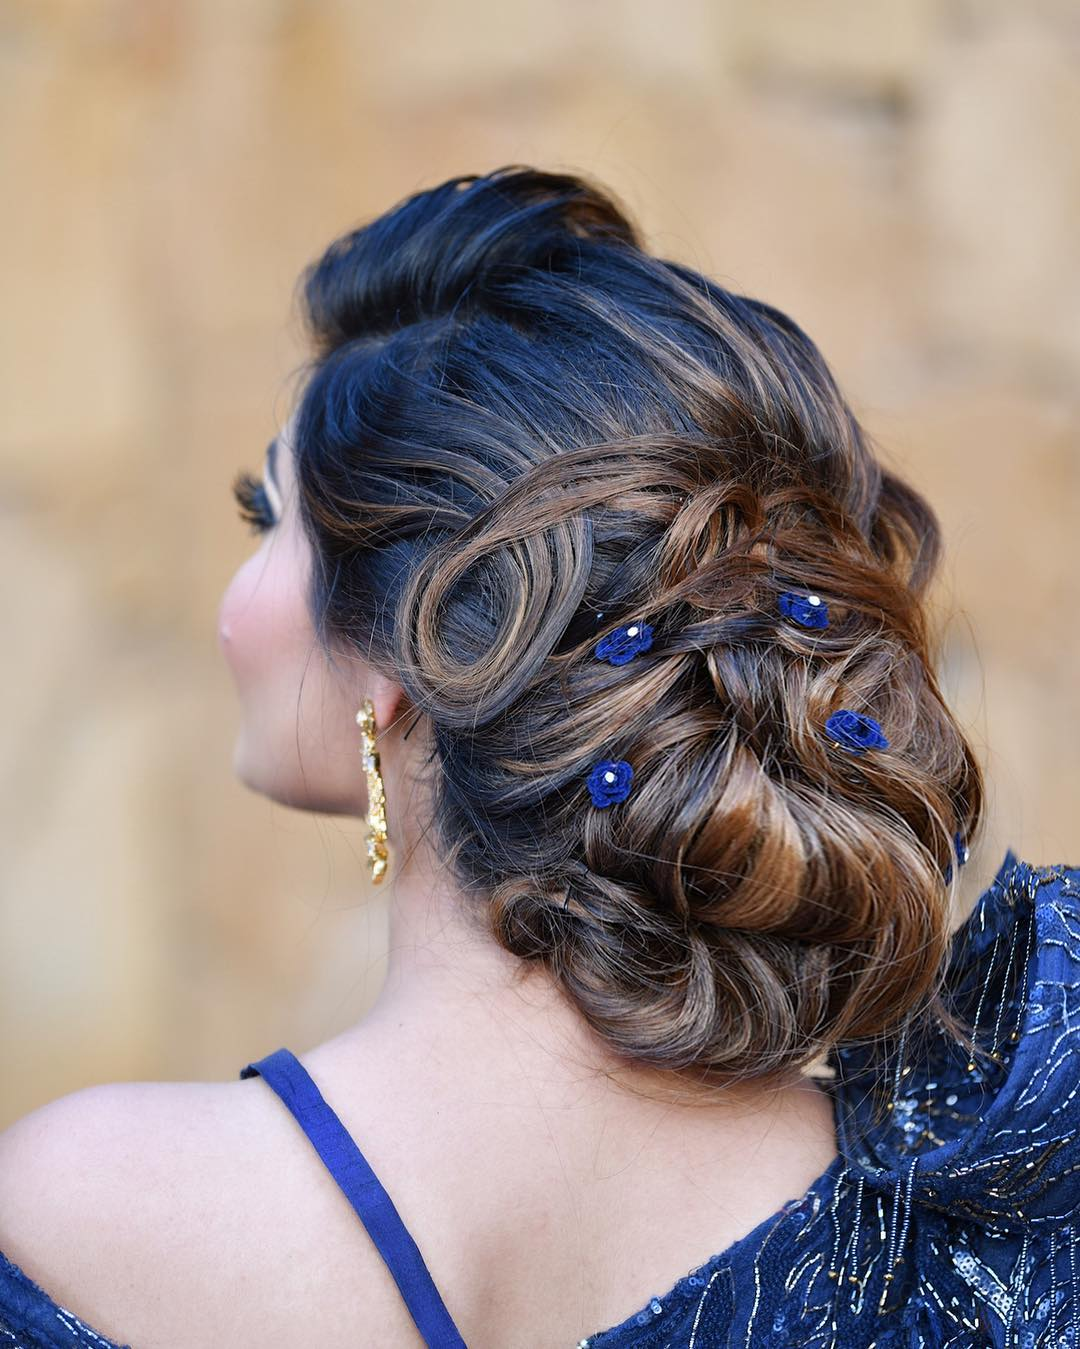 Bun with blue accents: Trending Bun Hairstyles for your Wedding Reception